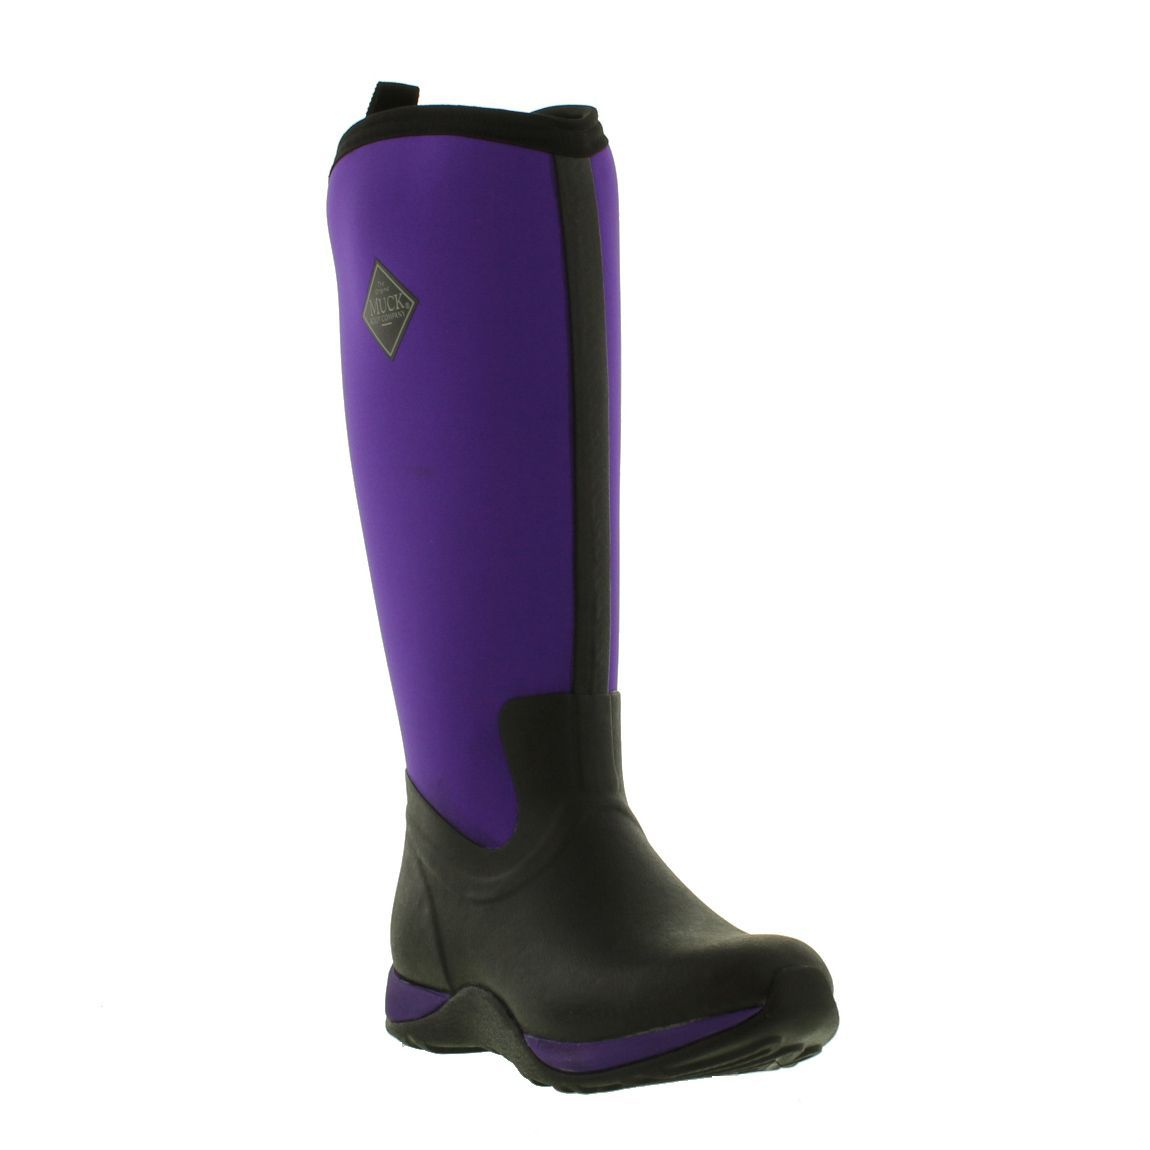 Muck Boots - Artic Adventure - Black Purple - Womens, I absolutely ...